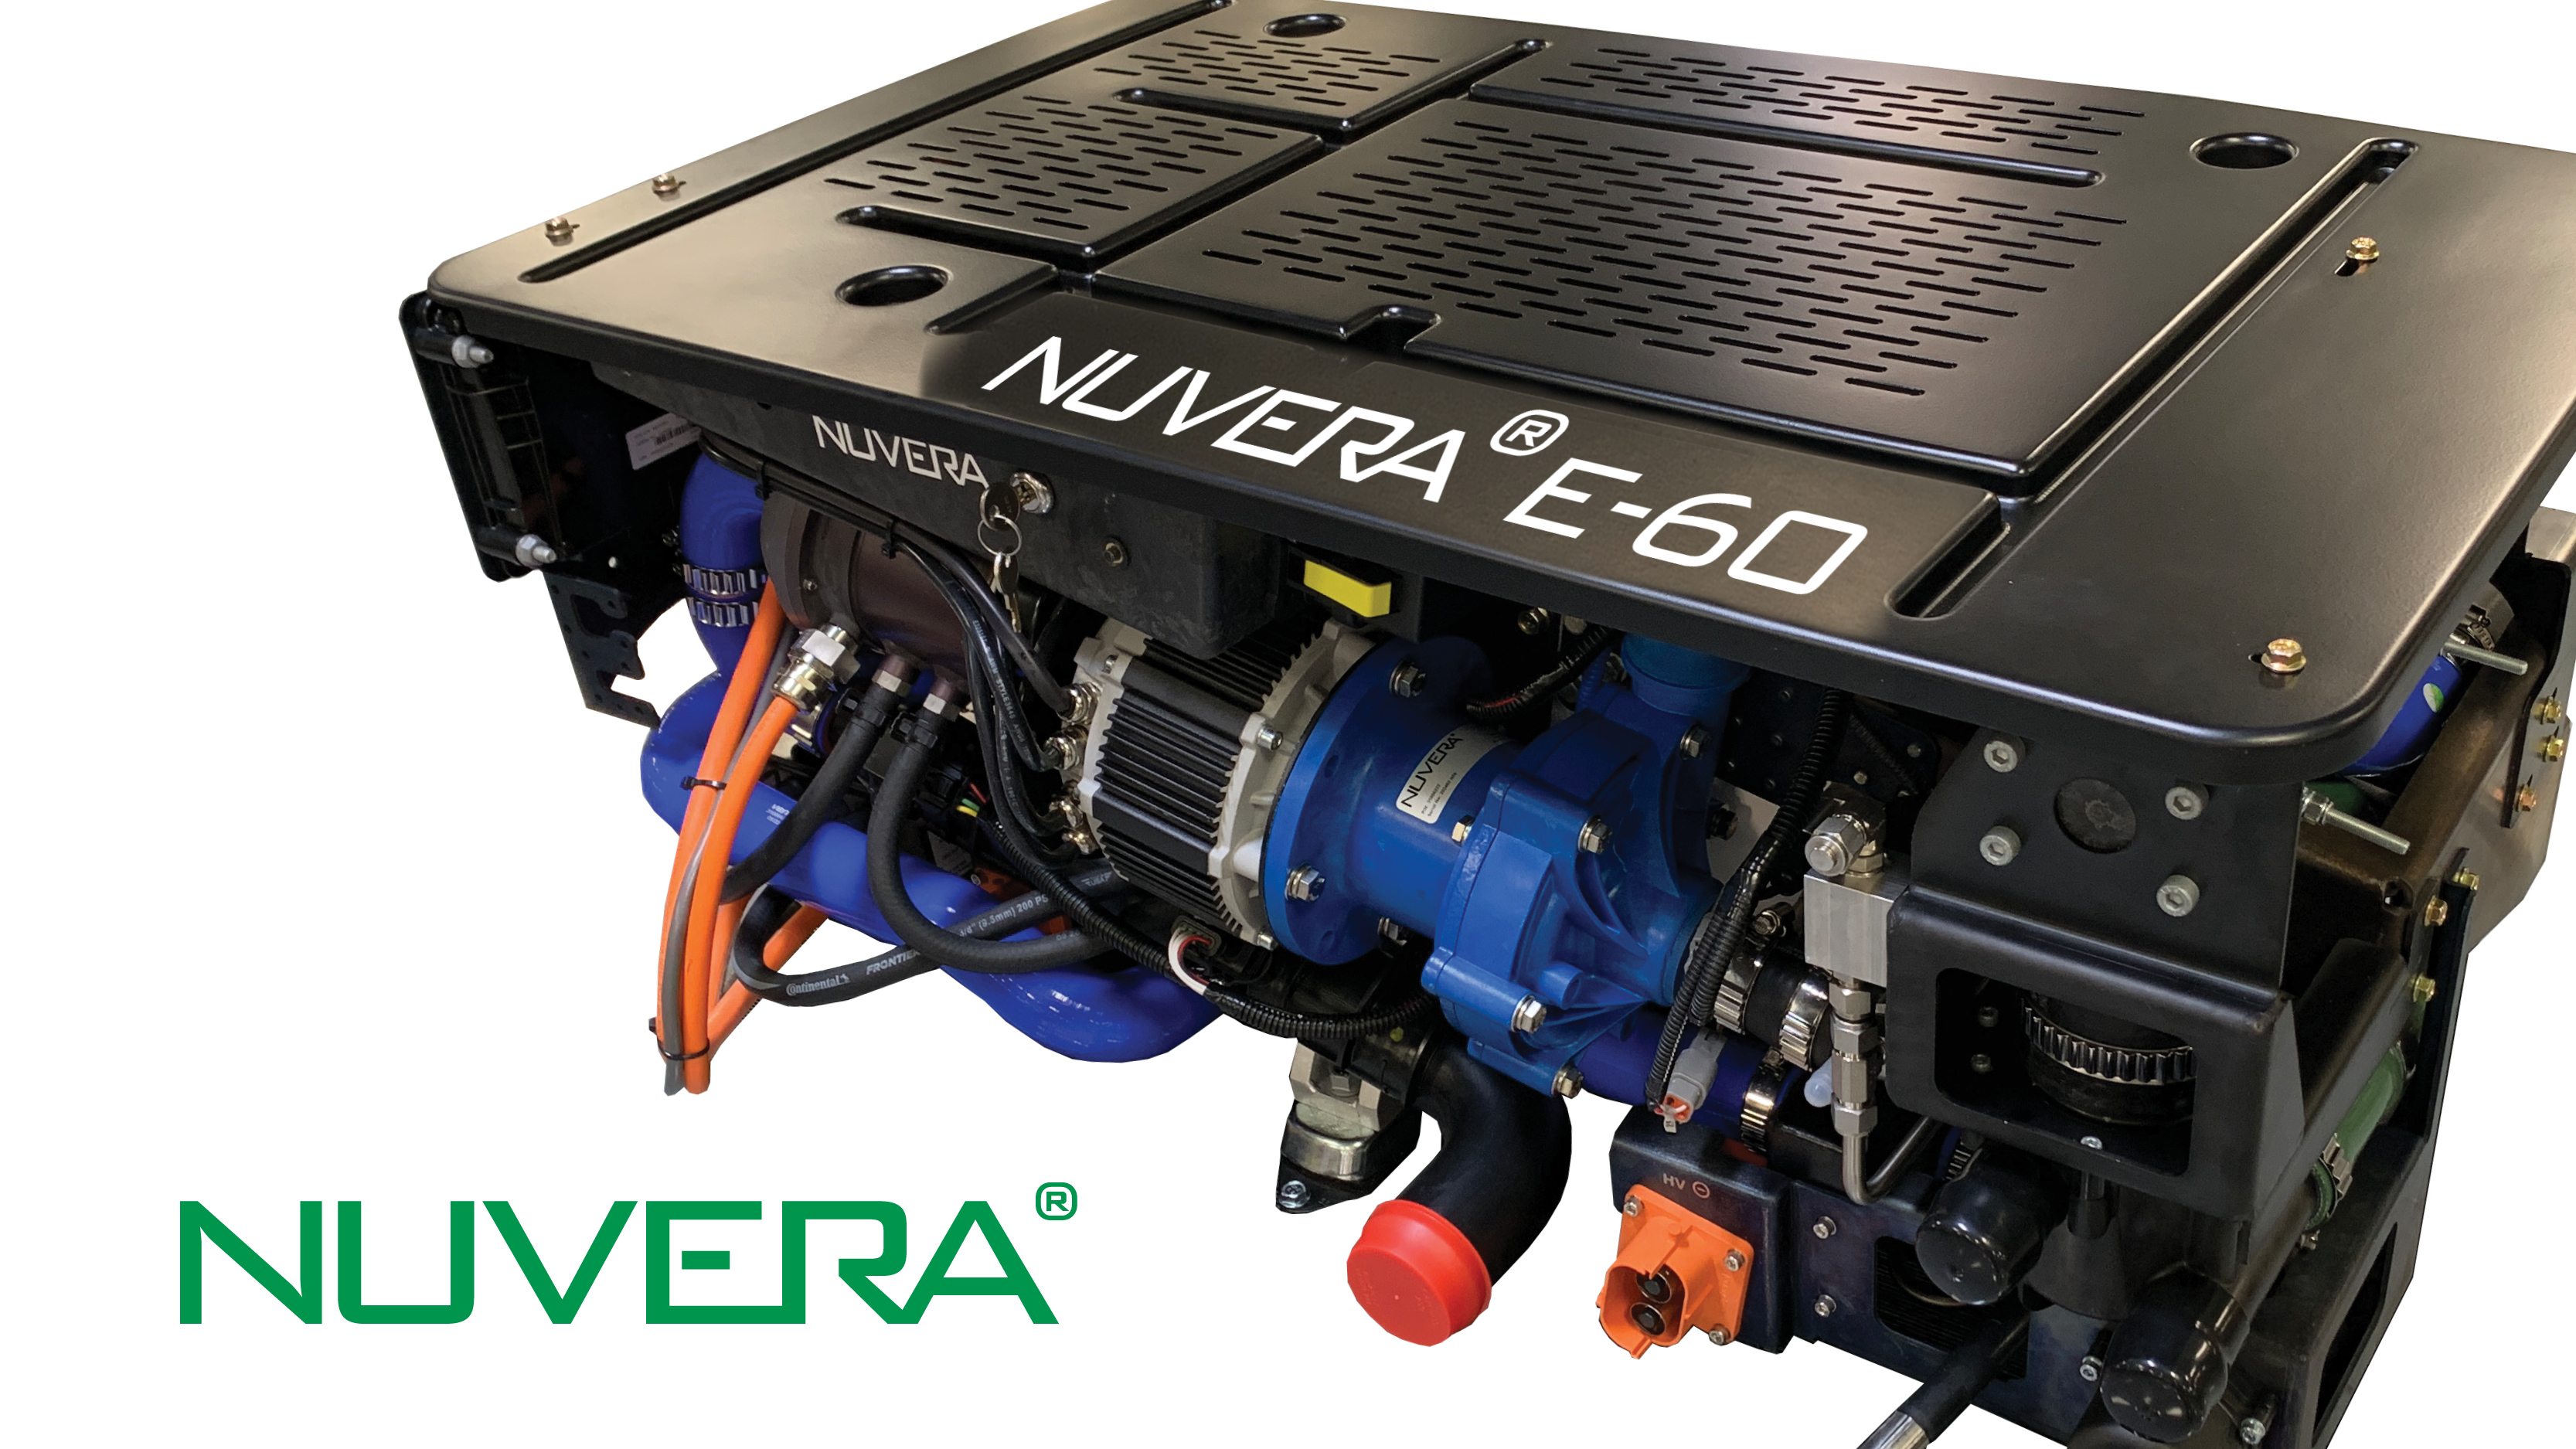 Nuvera Fuel Cell Engines: Pillars of Hydrogen Mobility